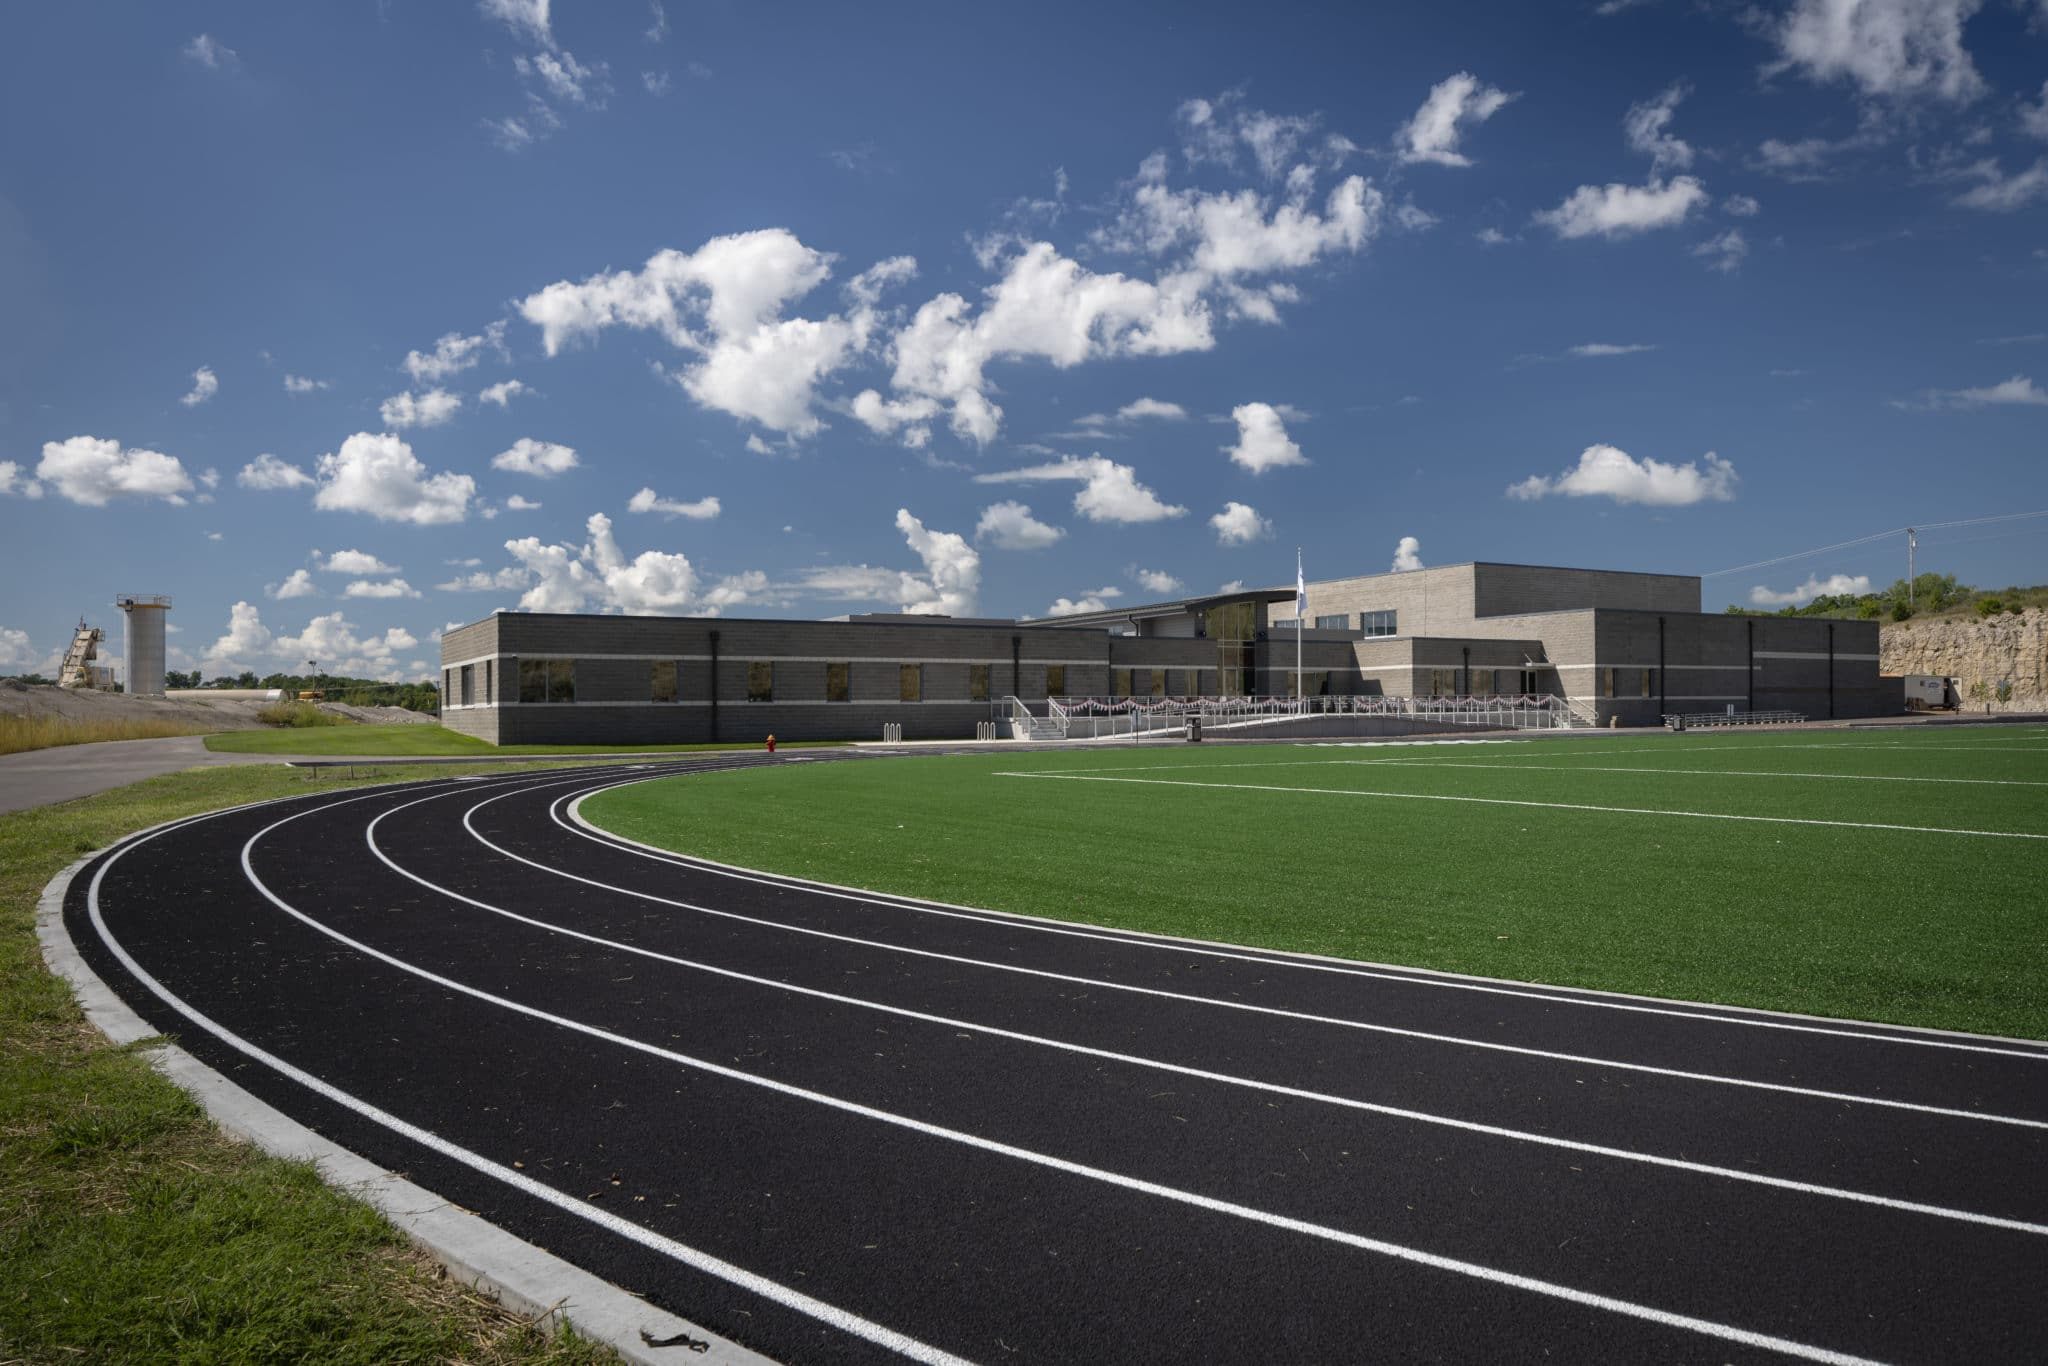 Exterior photo of the track and turf field at the Training for Life Campus